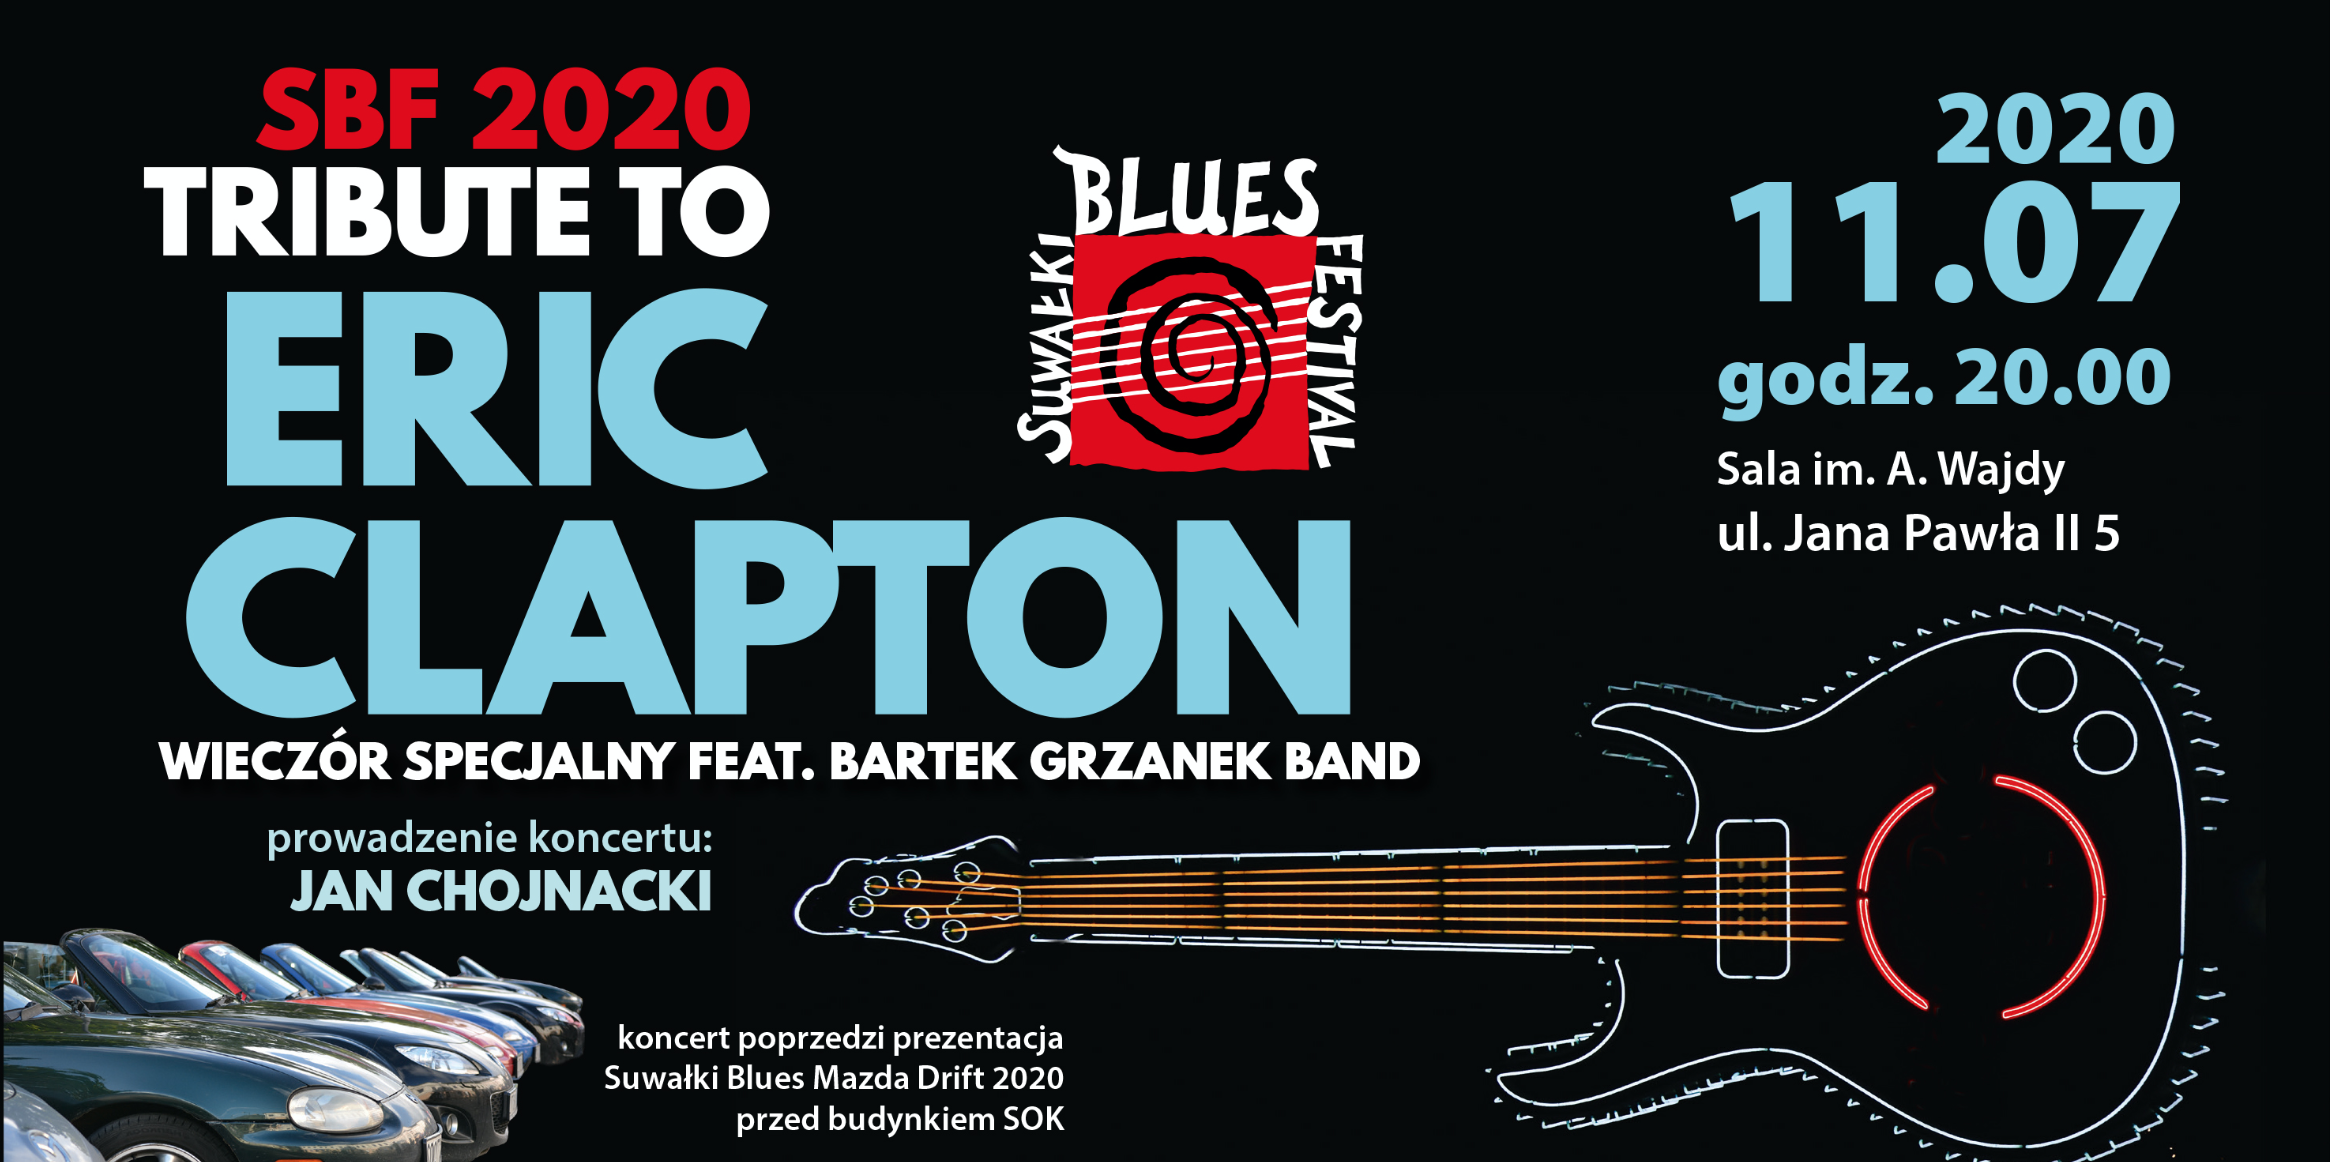 SBF 2020: Tribute to Eric Clapton z Bartek Grzanek Band